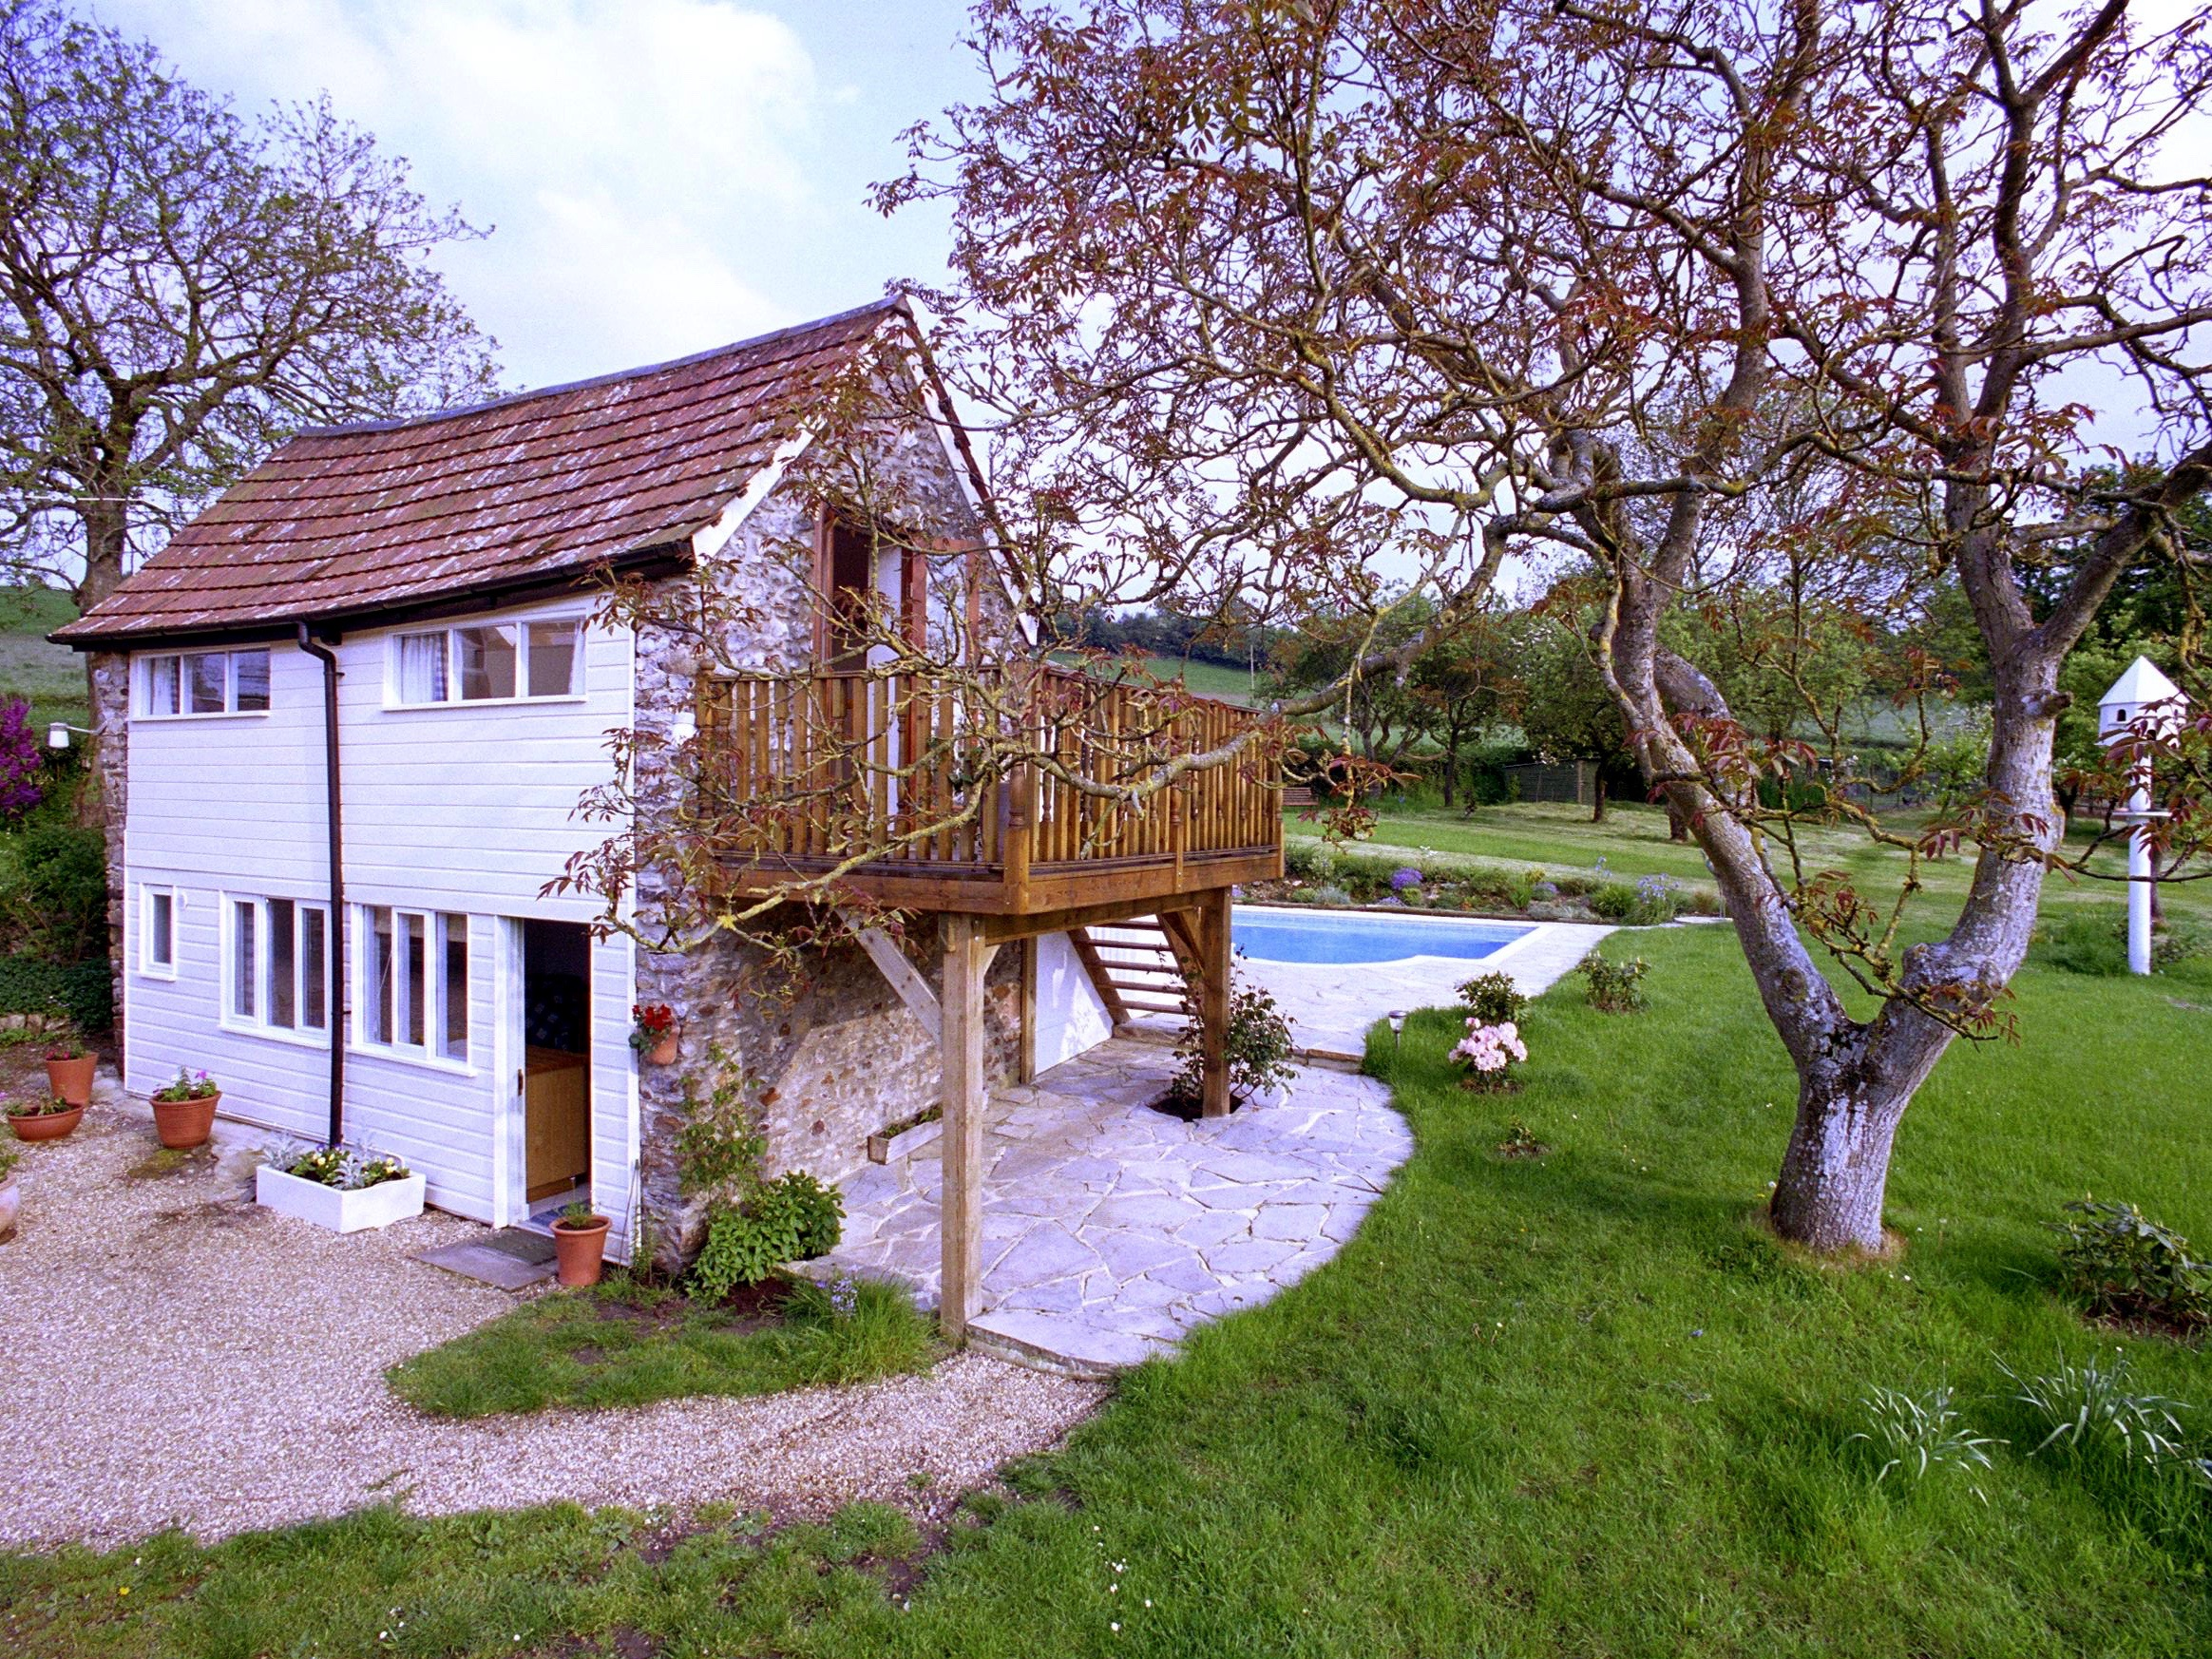 Holiday homes with a pool  in The Blackdown Hills, South West, West Country